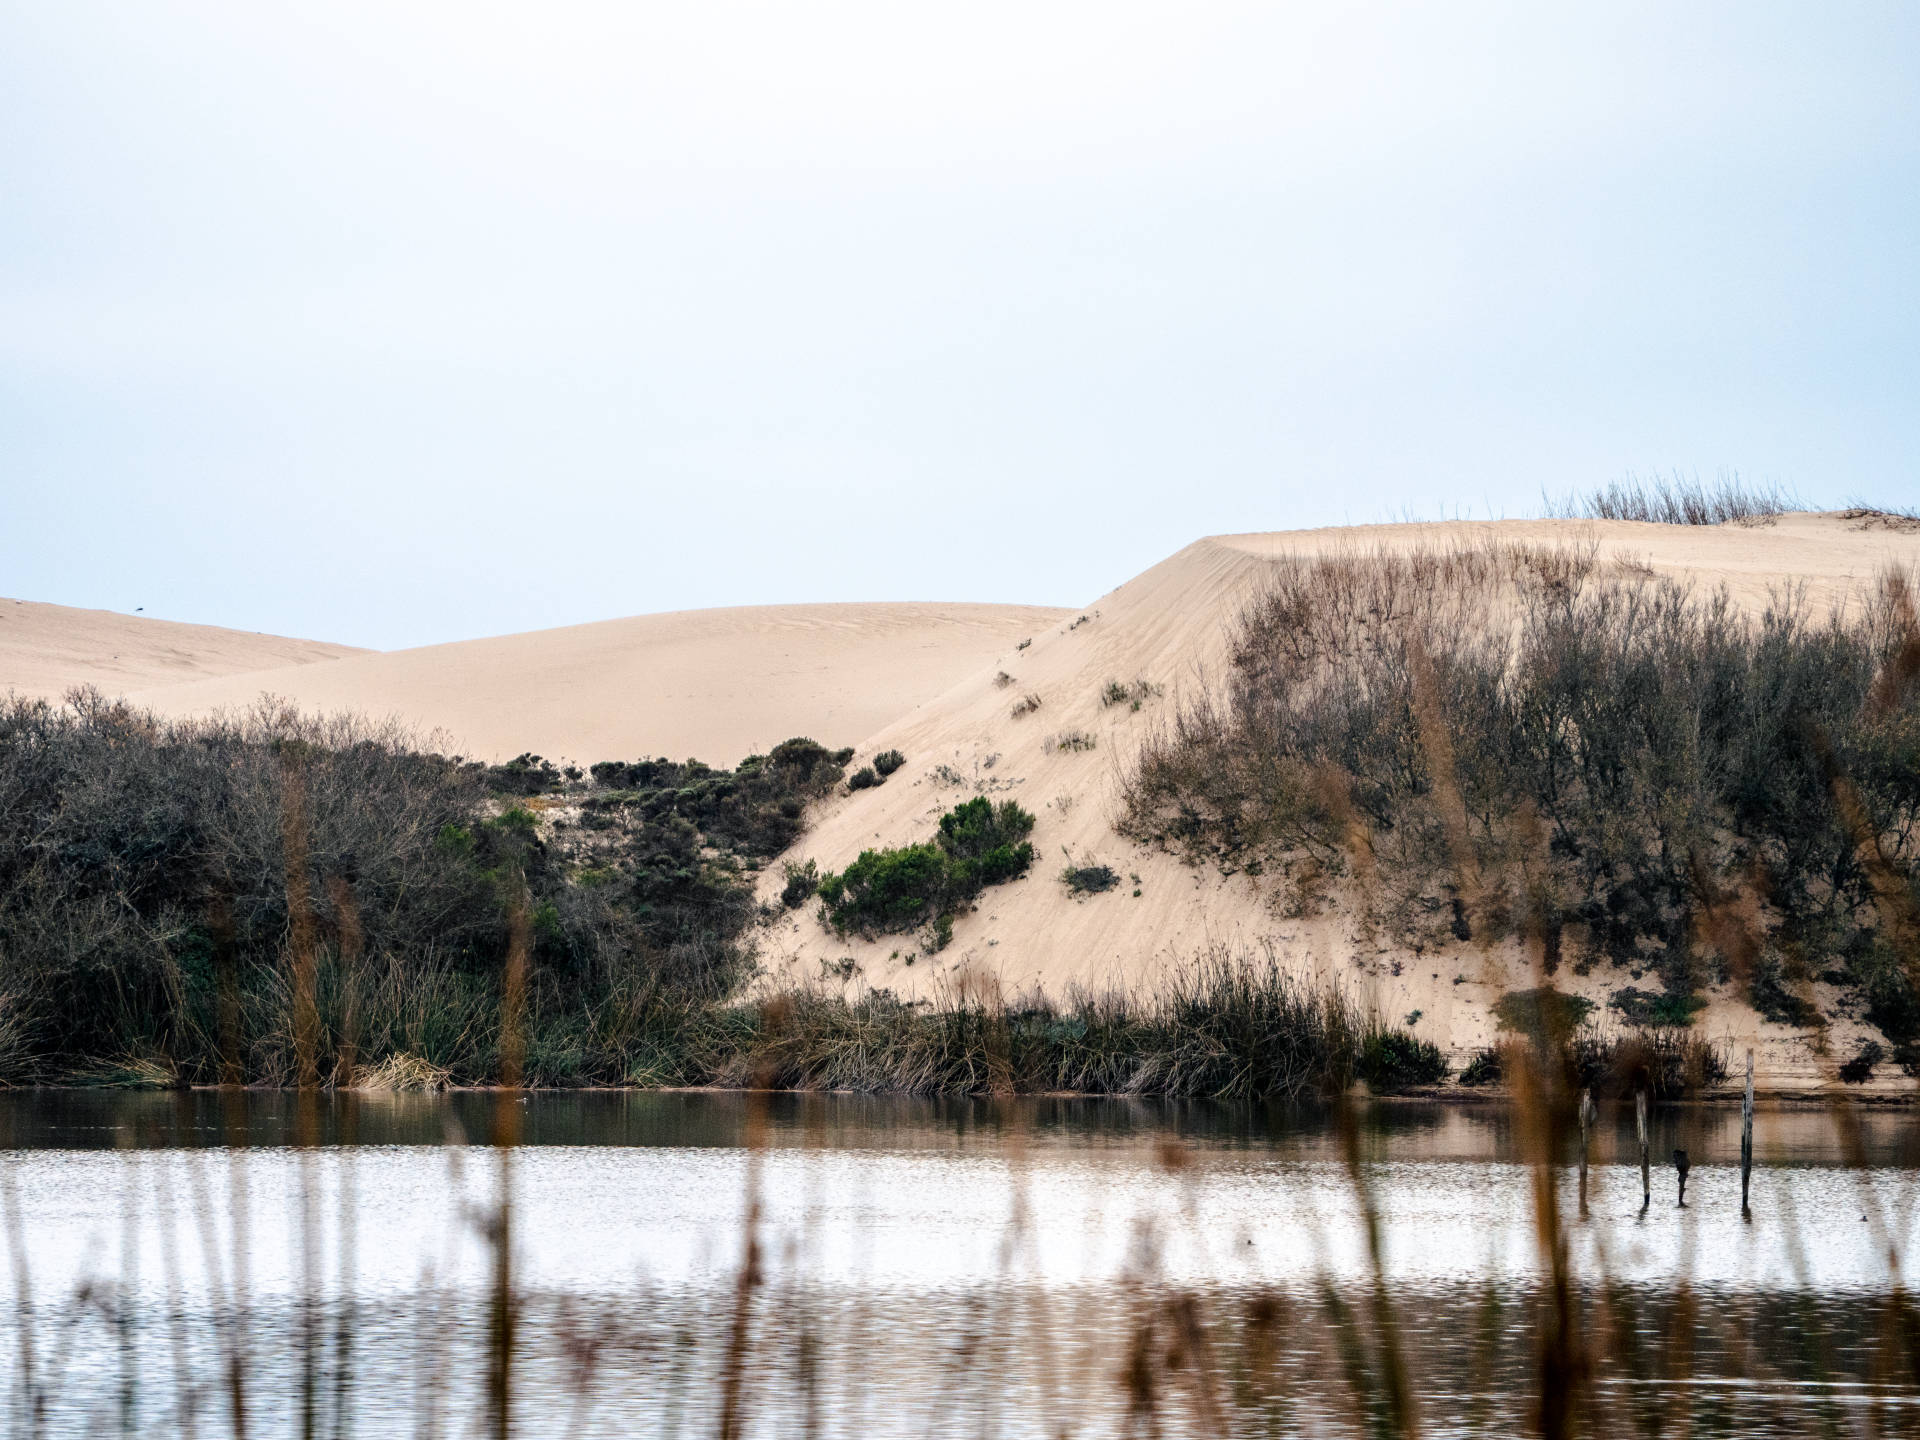 San dunes in front of lake